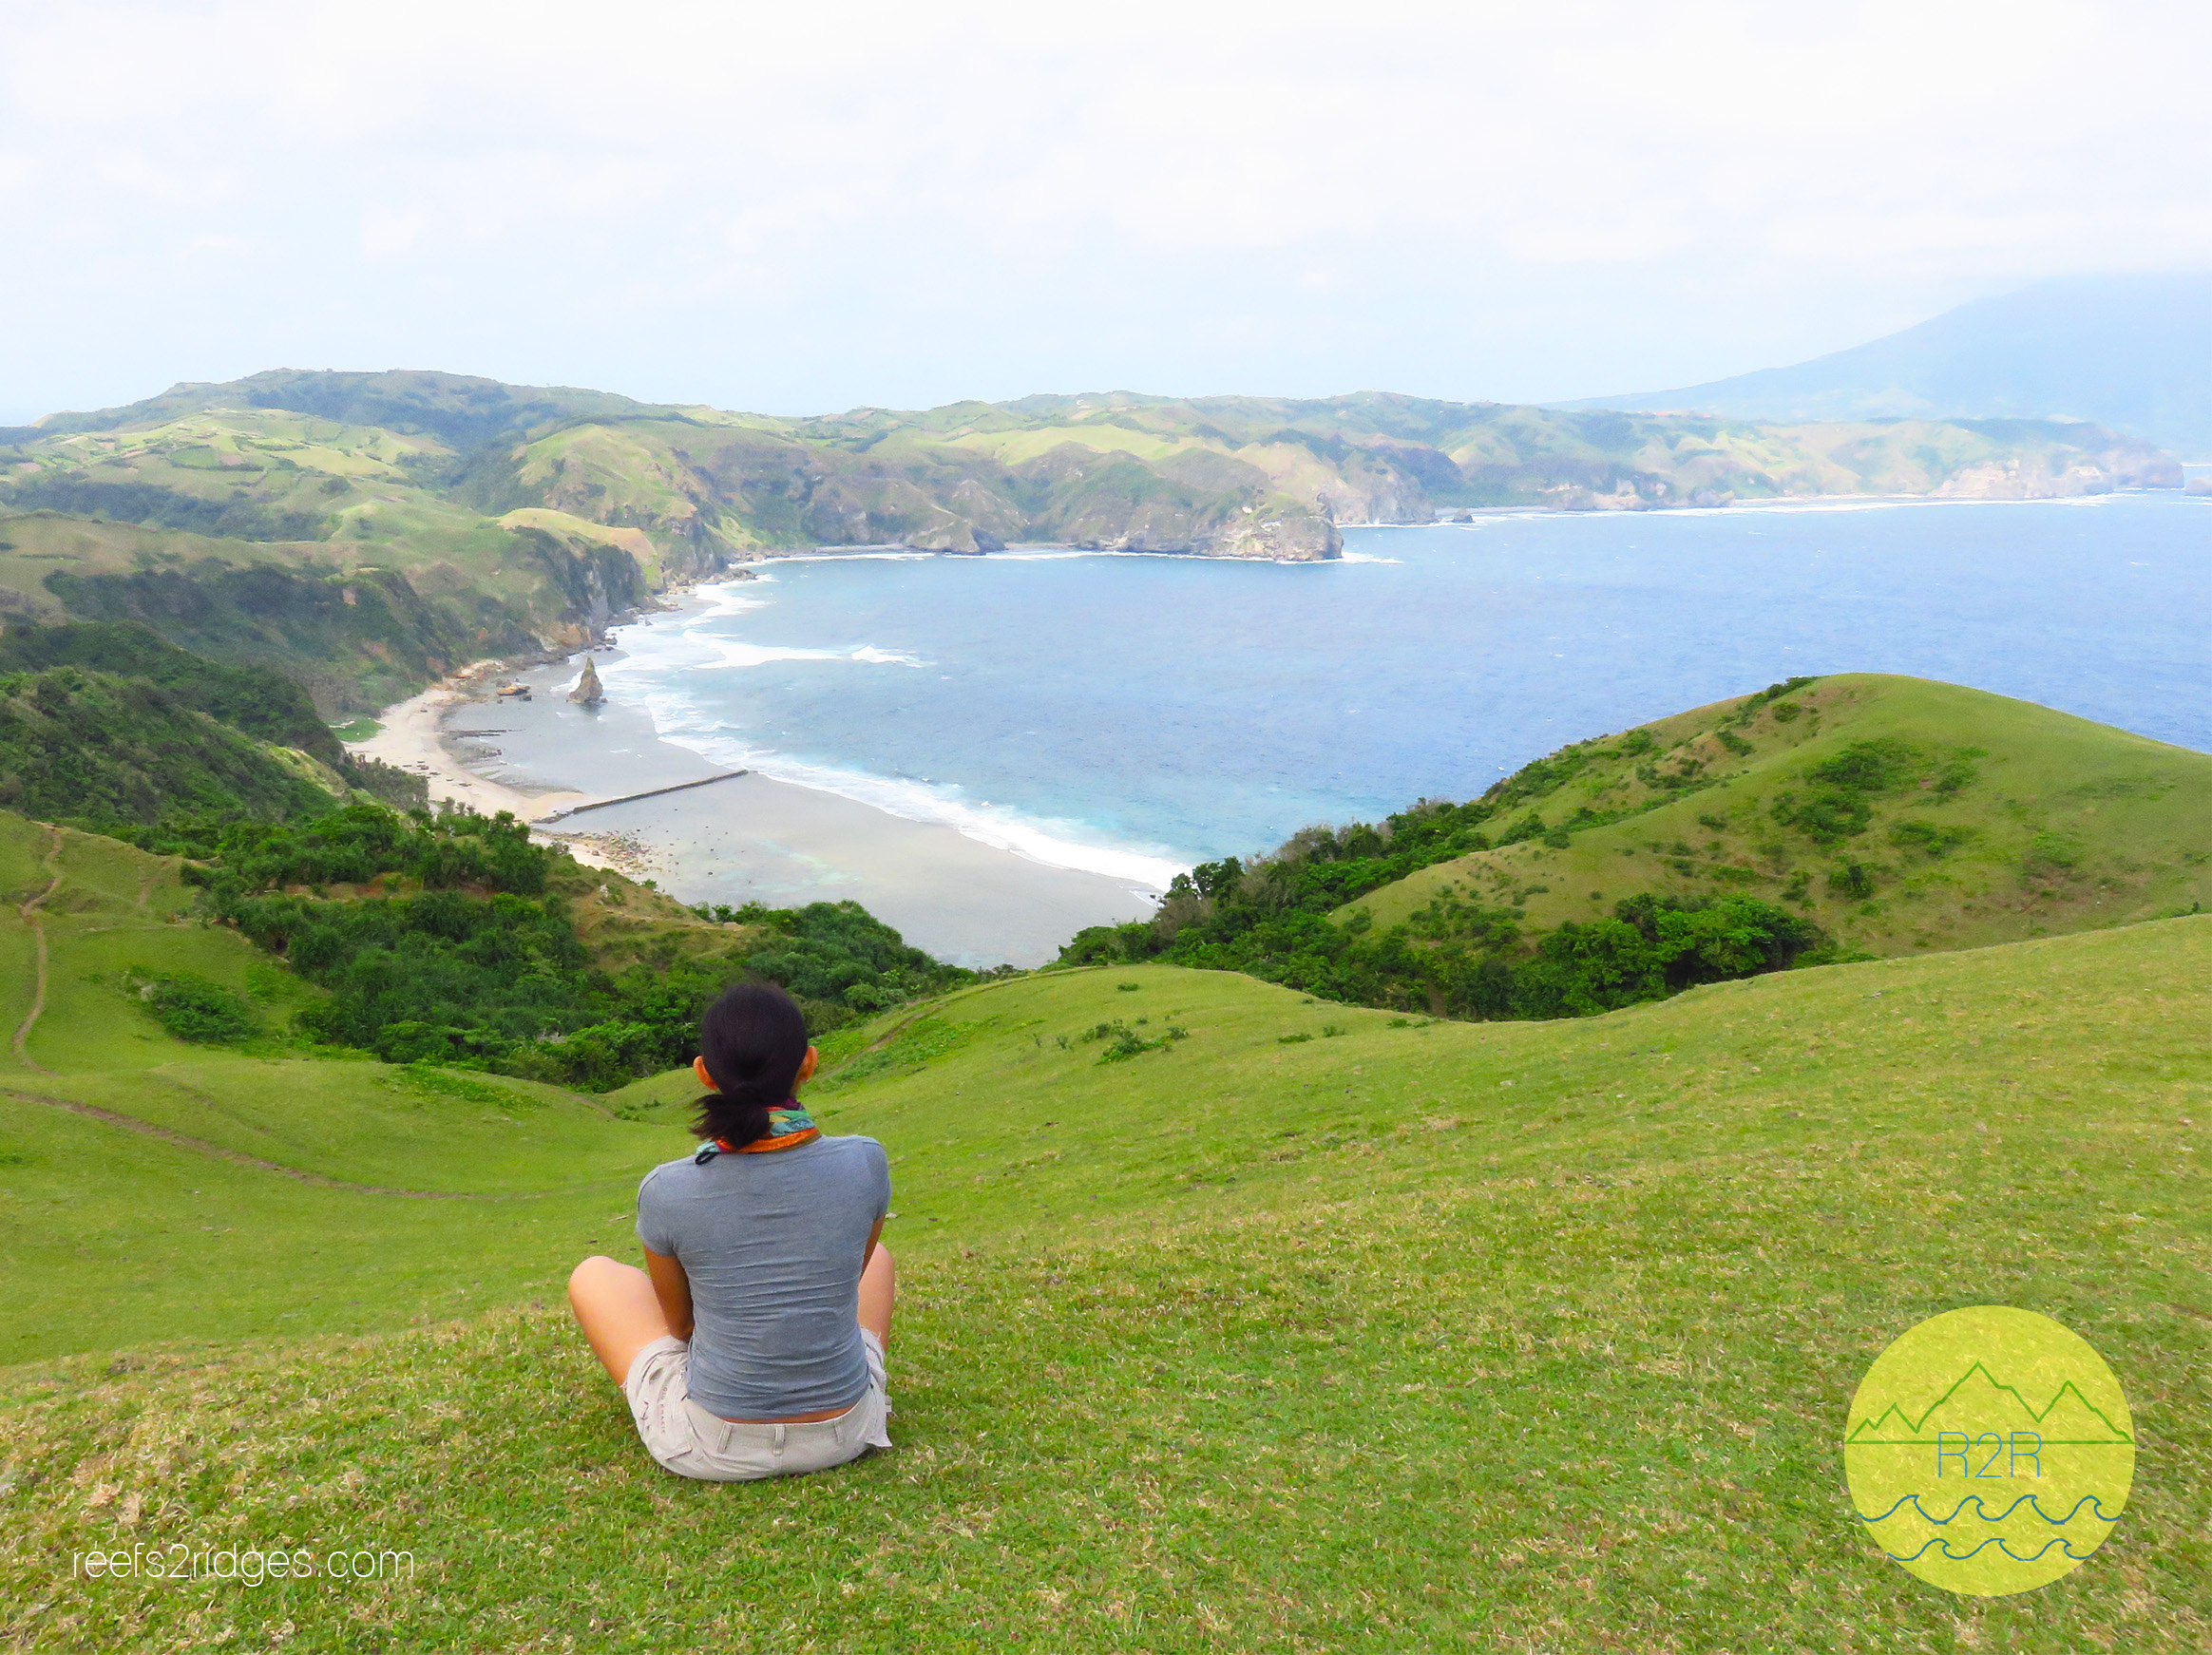 Home of the Winds: A Travel Guide on Batanes